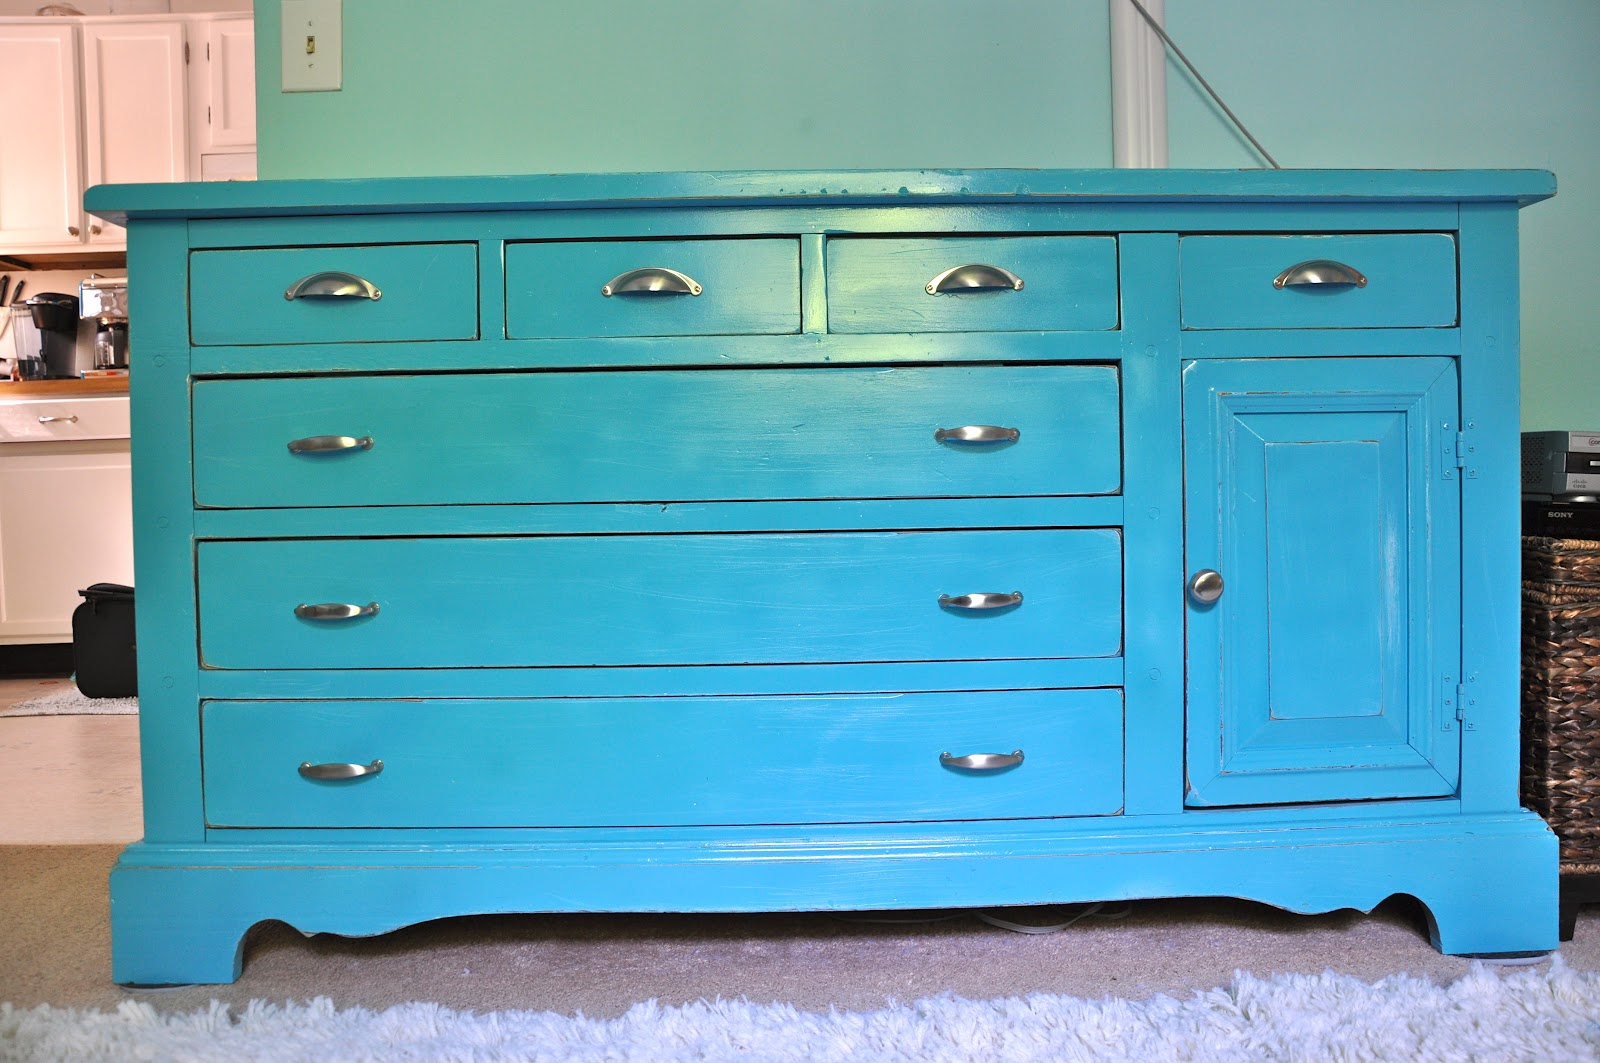 Valspar Turquoise Spray Paint Little Bit Funky Before During After